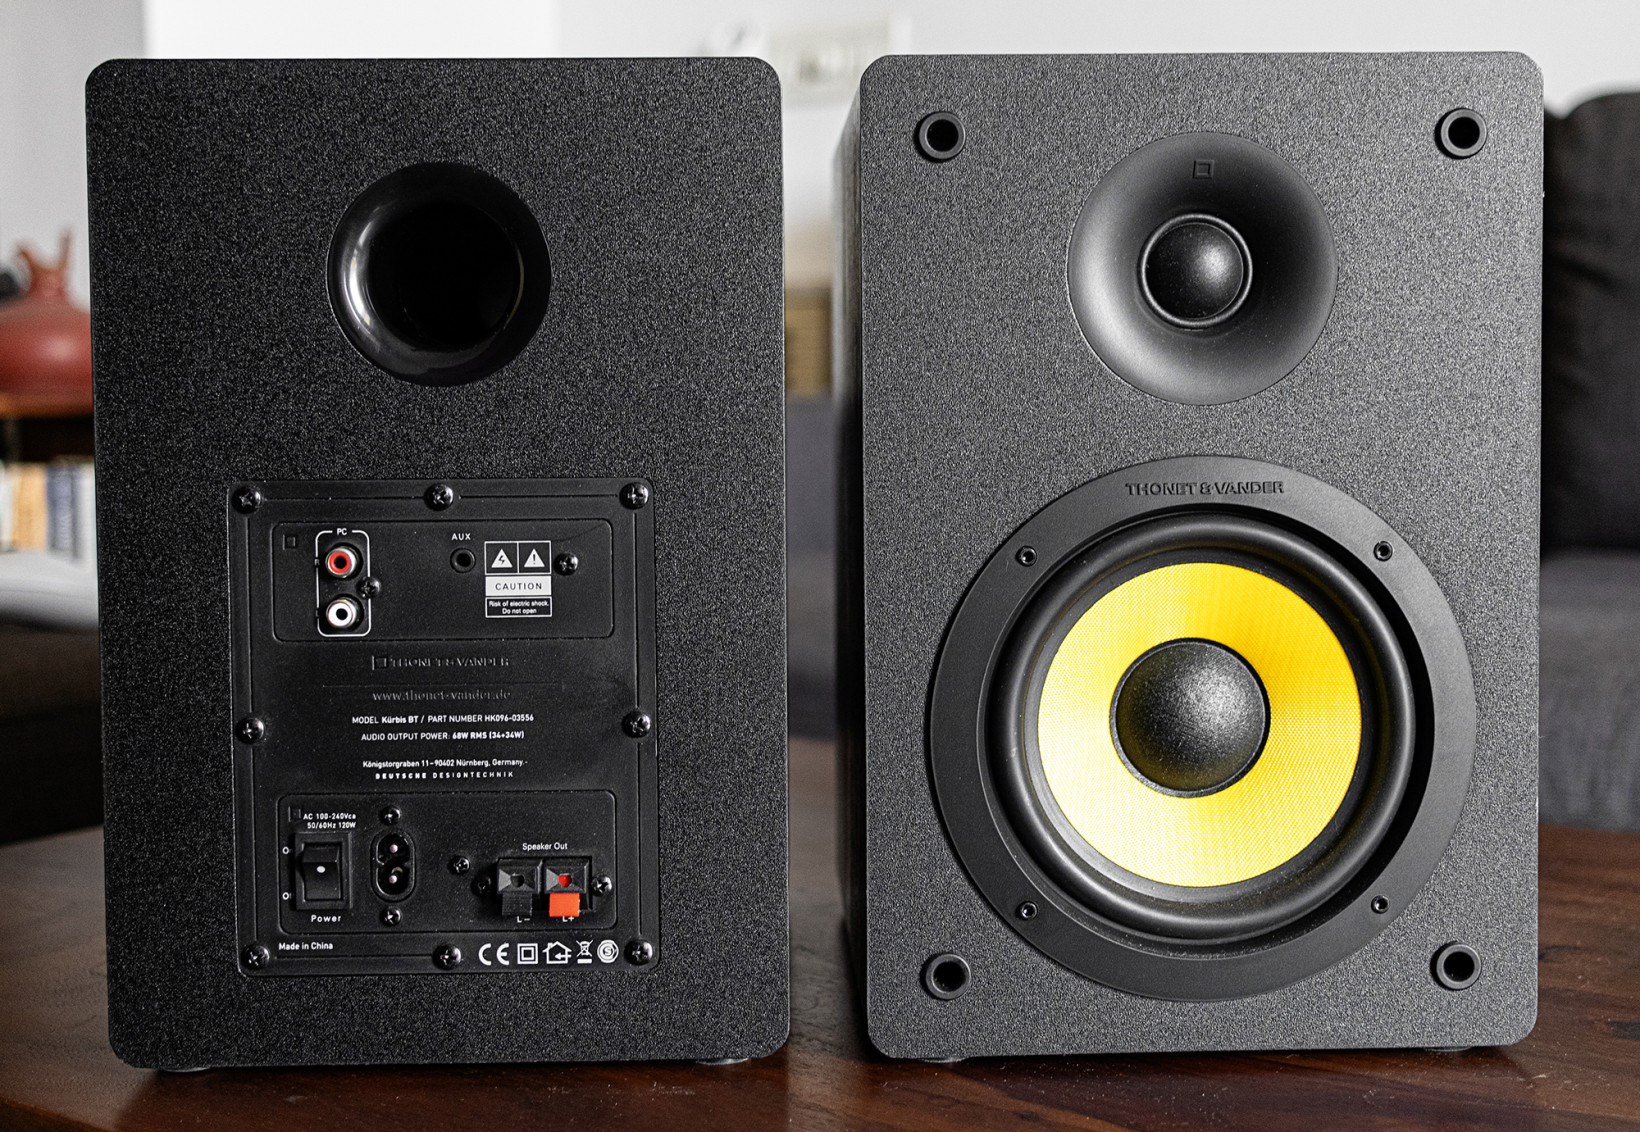 The Kubris speakers have their inputs and power switch on the back, which isn't ideal